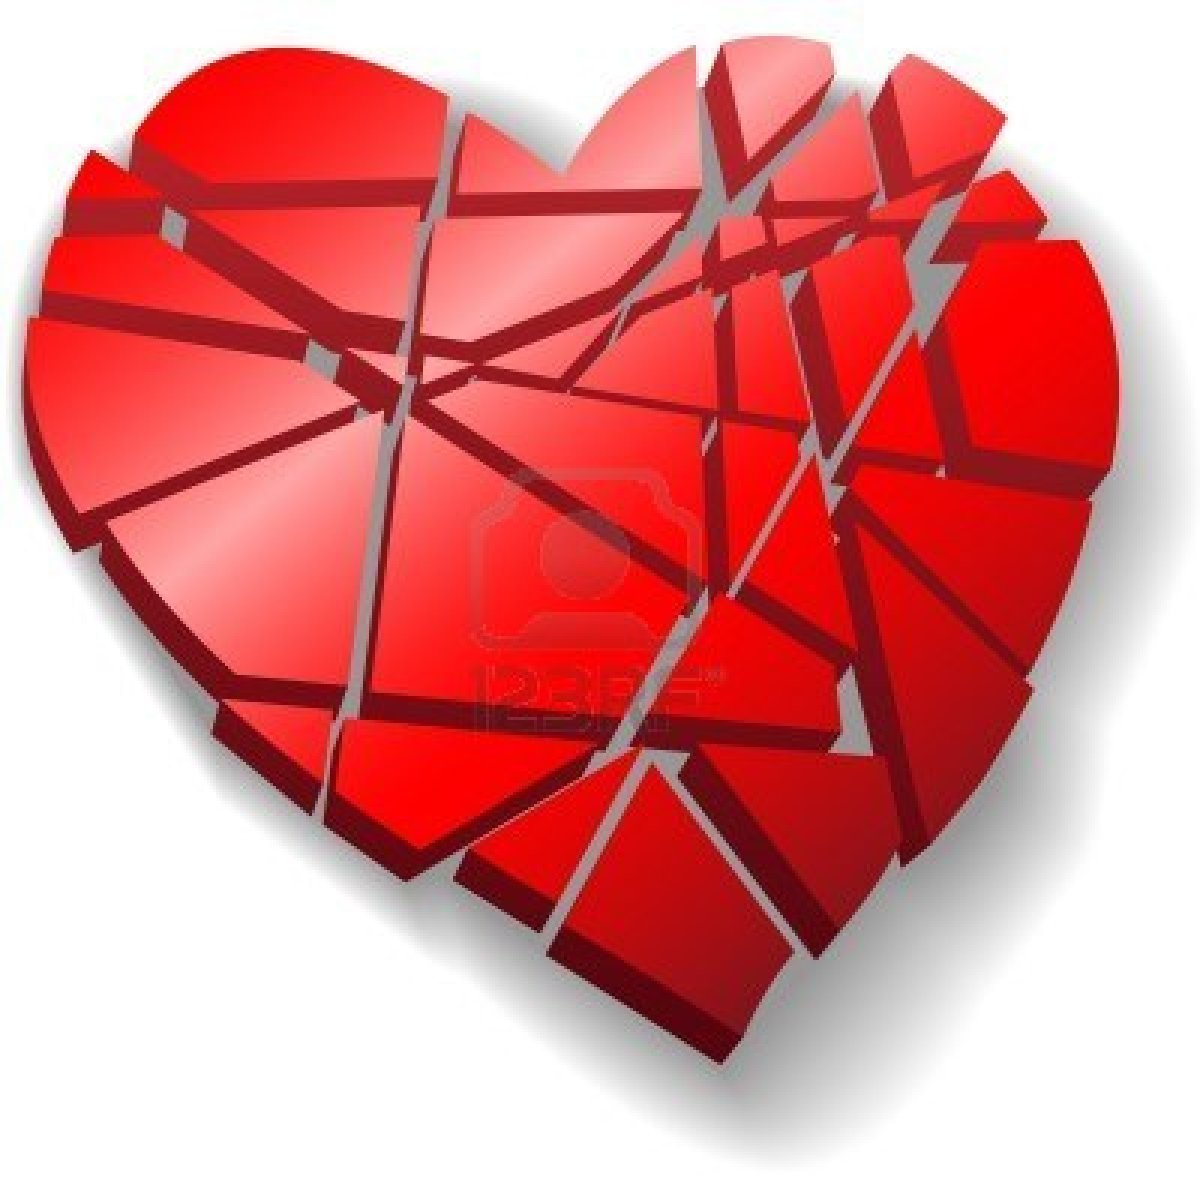 4660394 A Heartbroken Shattered Red Valentine Heart Symbol Of Love